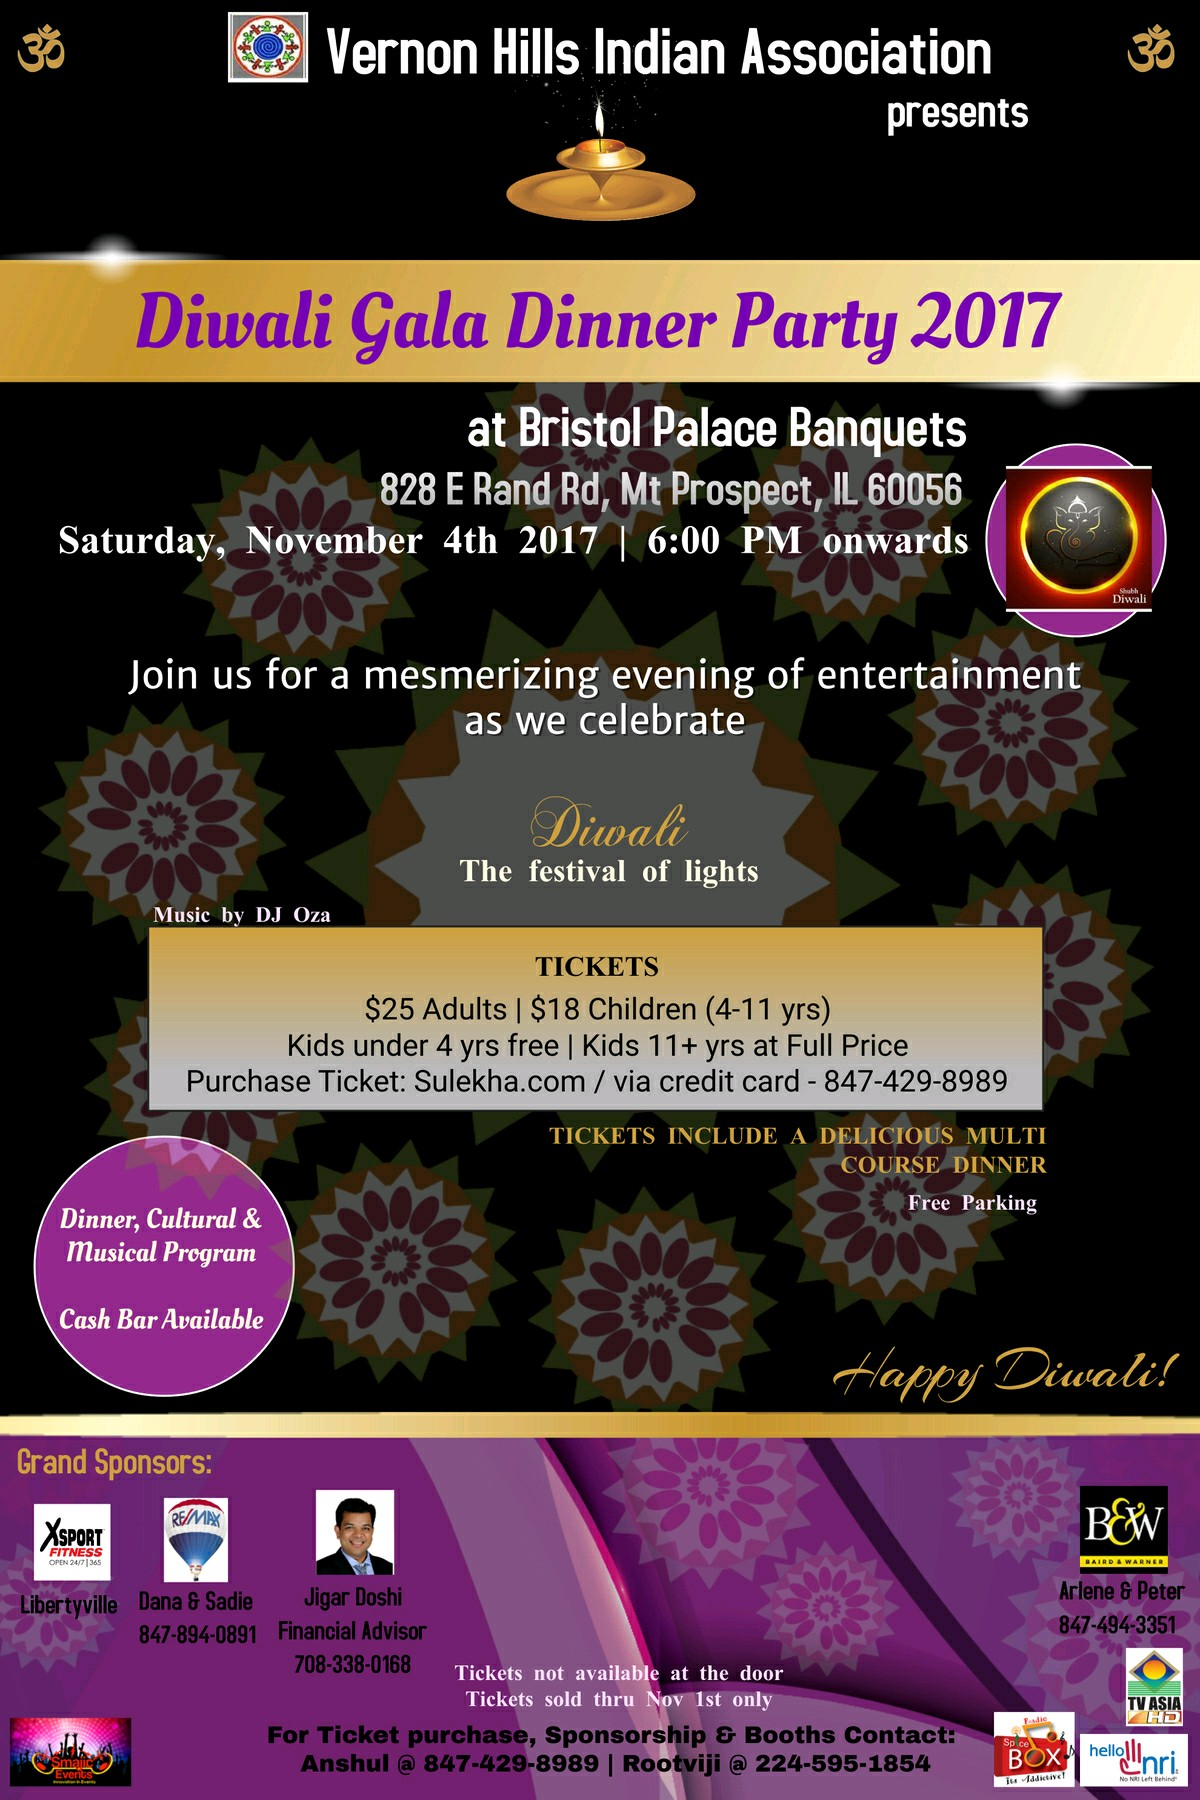 Diwali Gala Dinner Party